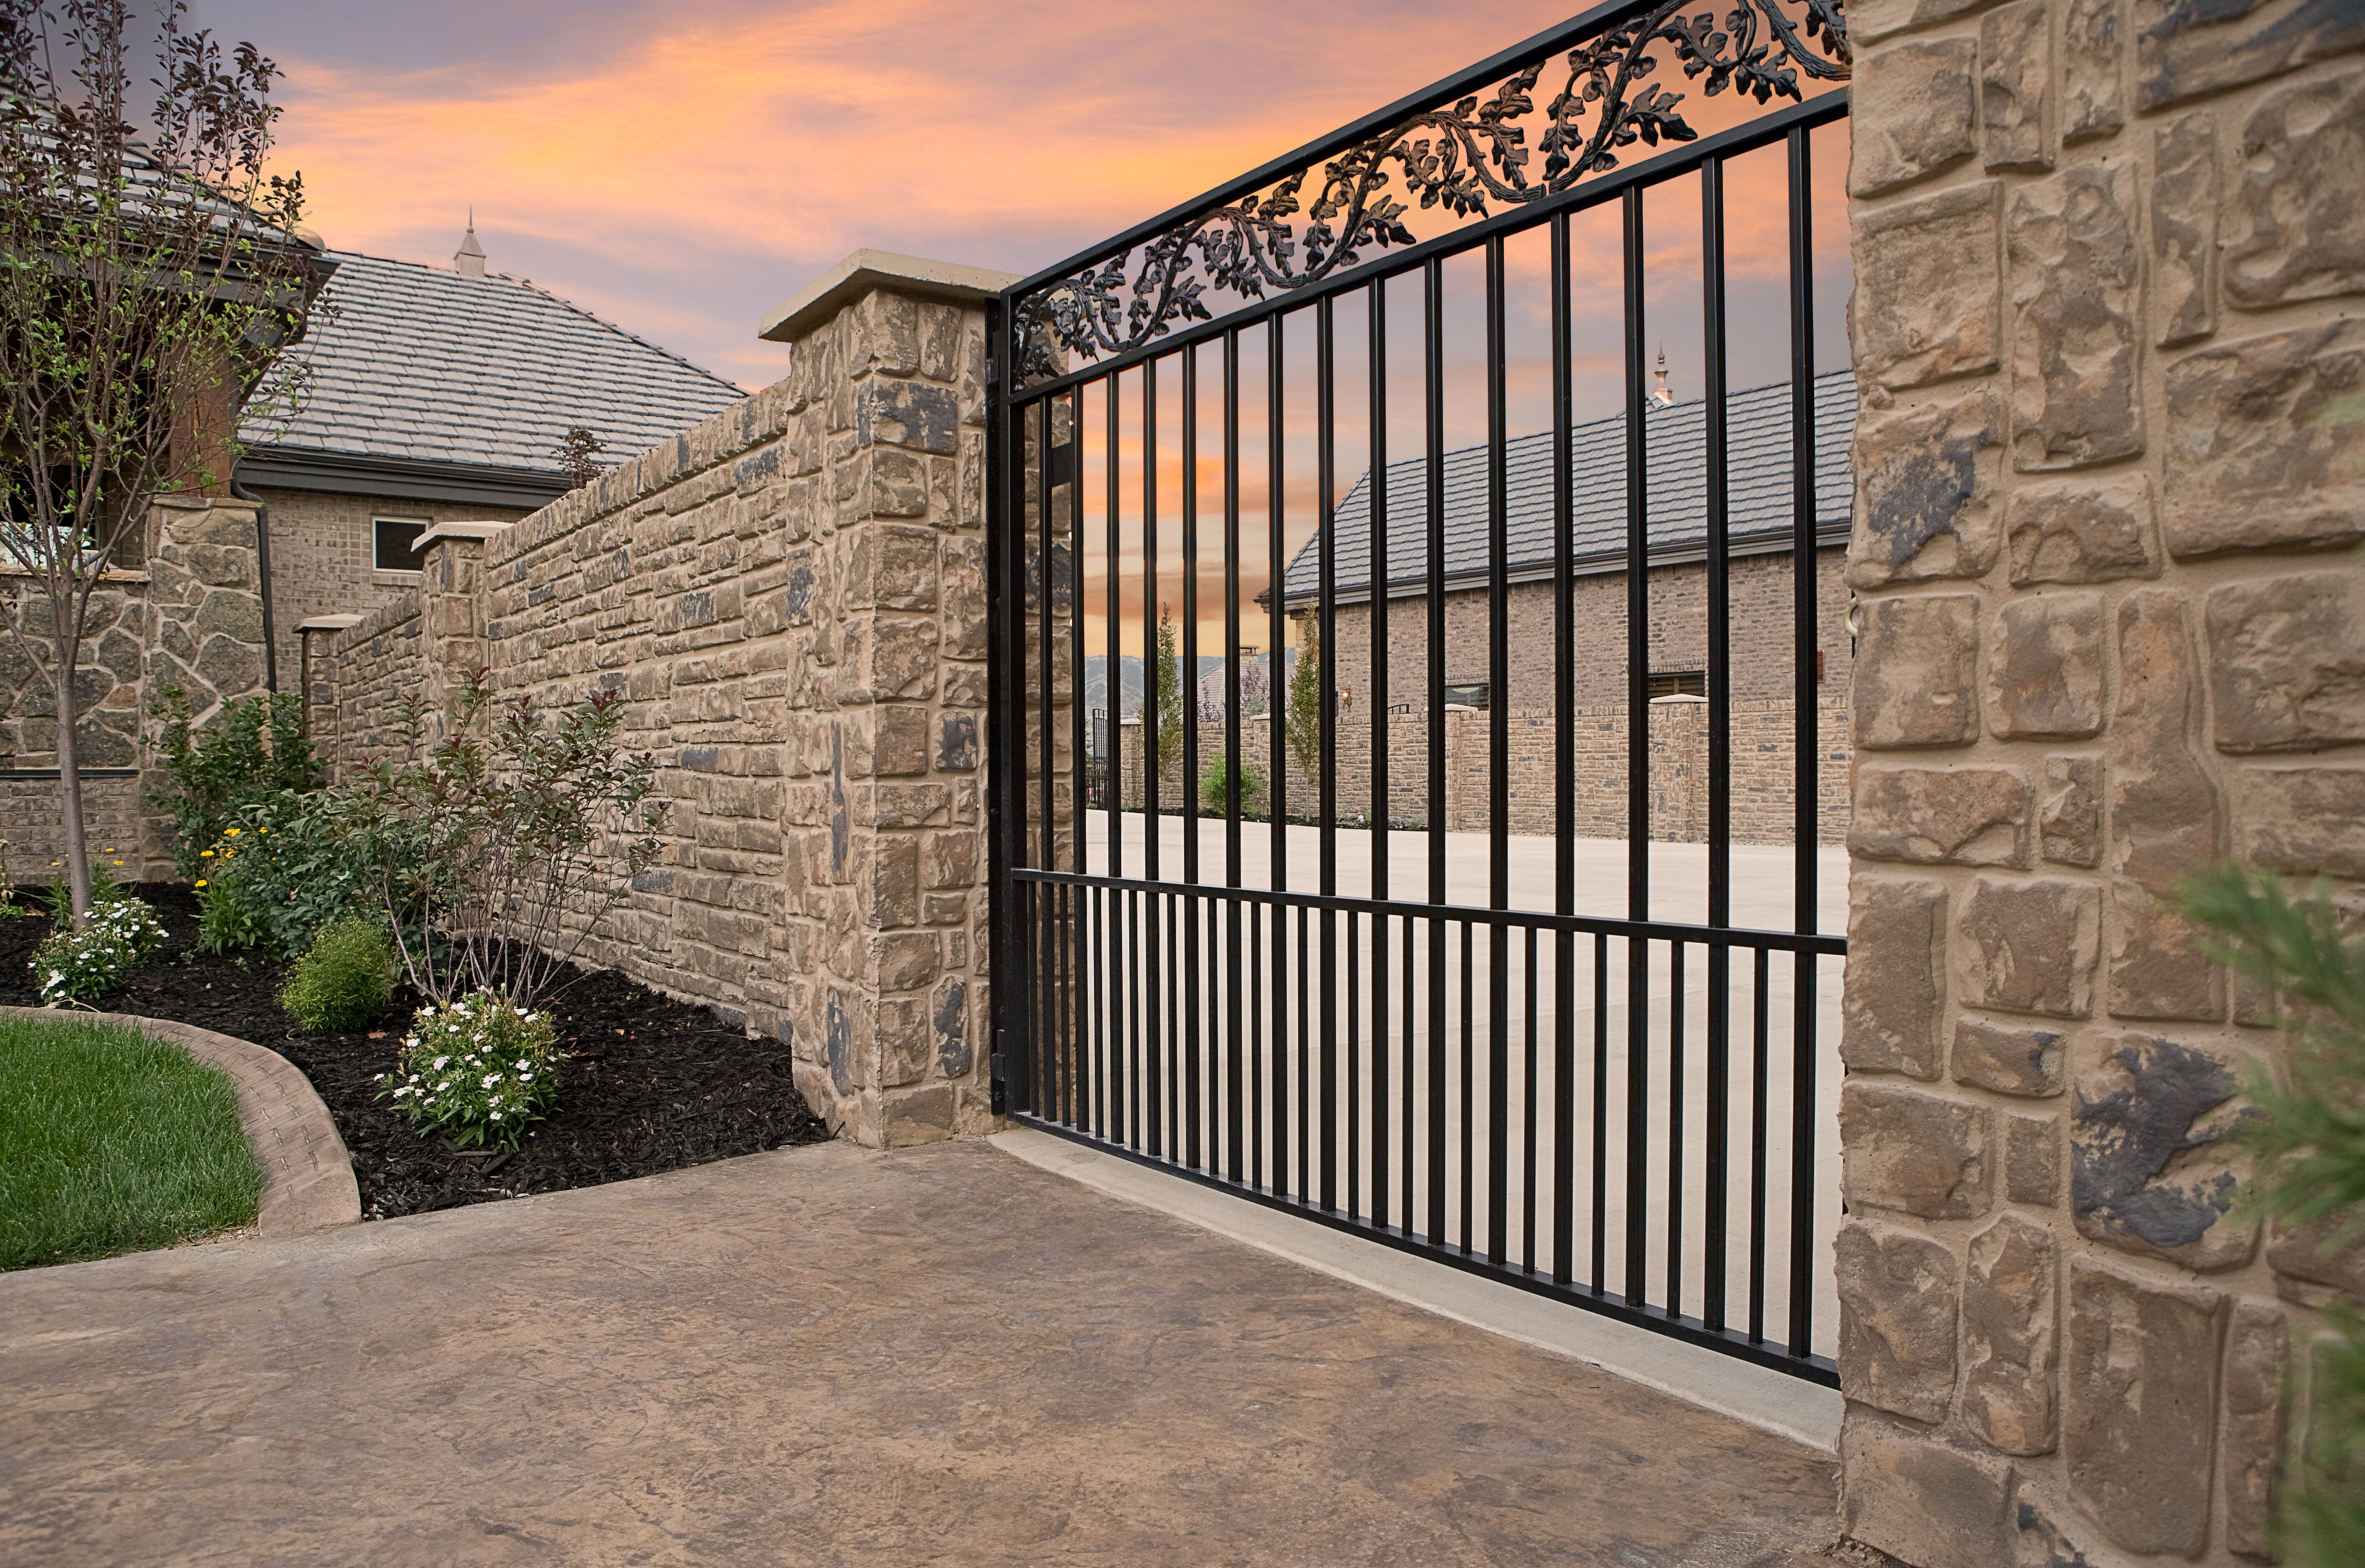 Verti Crete Is The Leader In Providing Beautiful Secure Concrete Fencing To Enhance Your Landscape Stone Exterior Houses Stone Entryway Precast Concrete